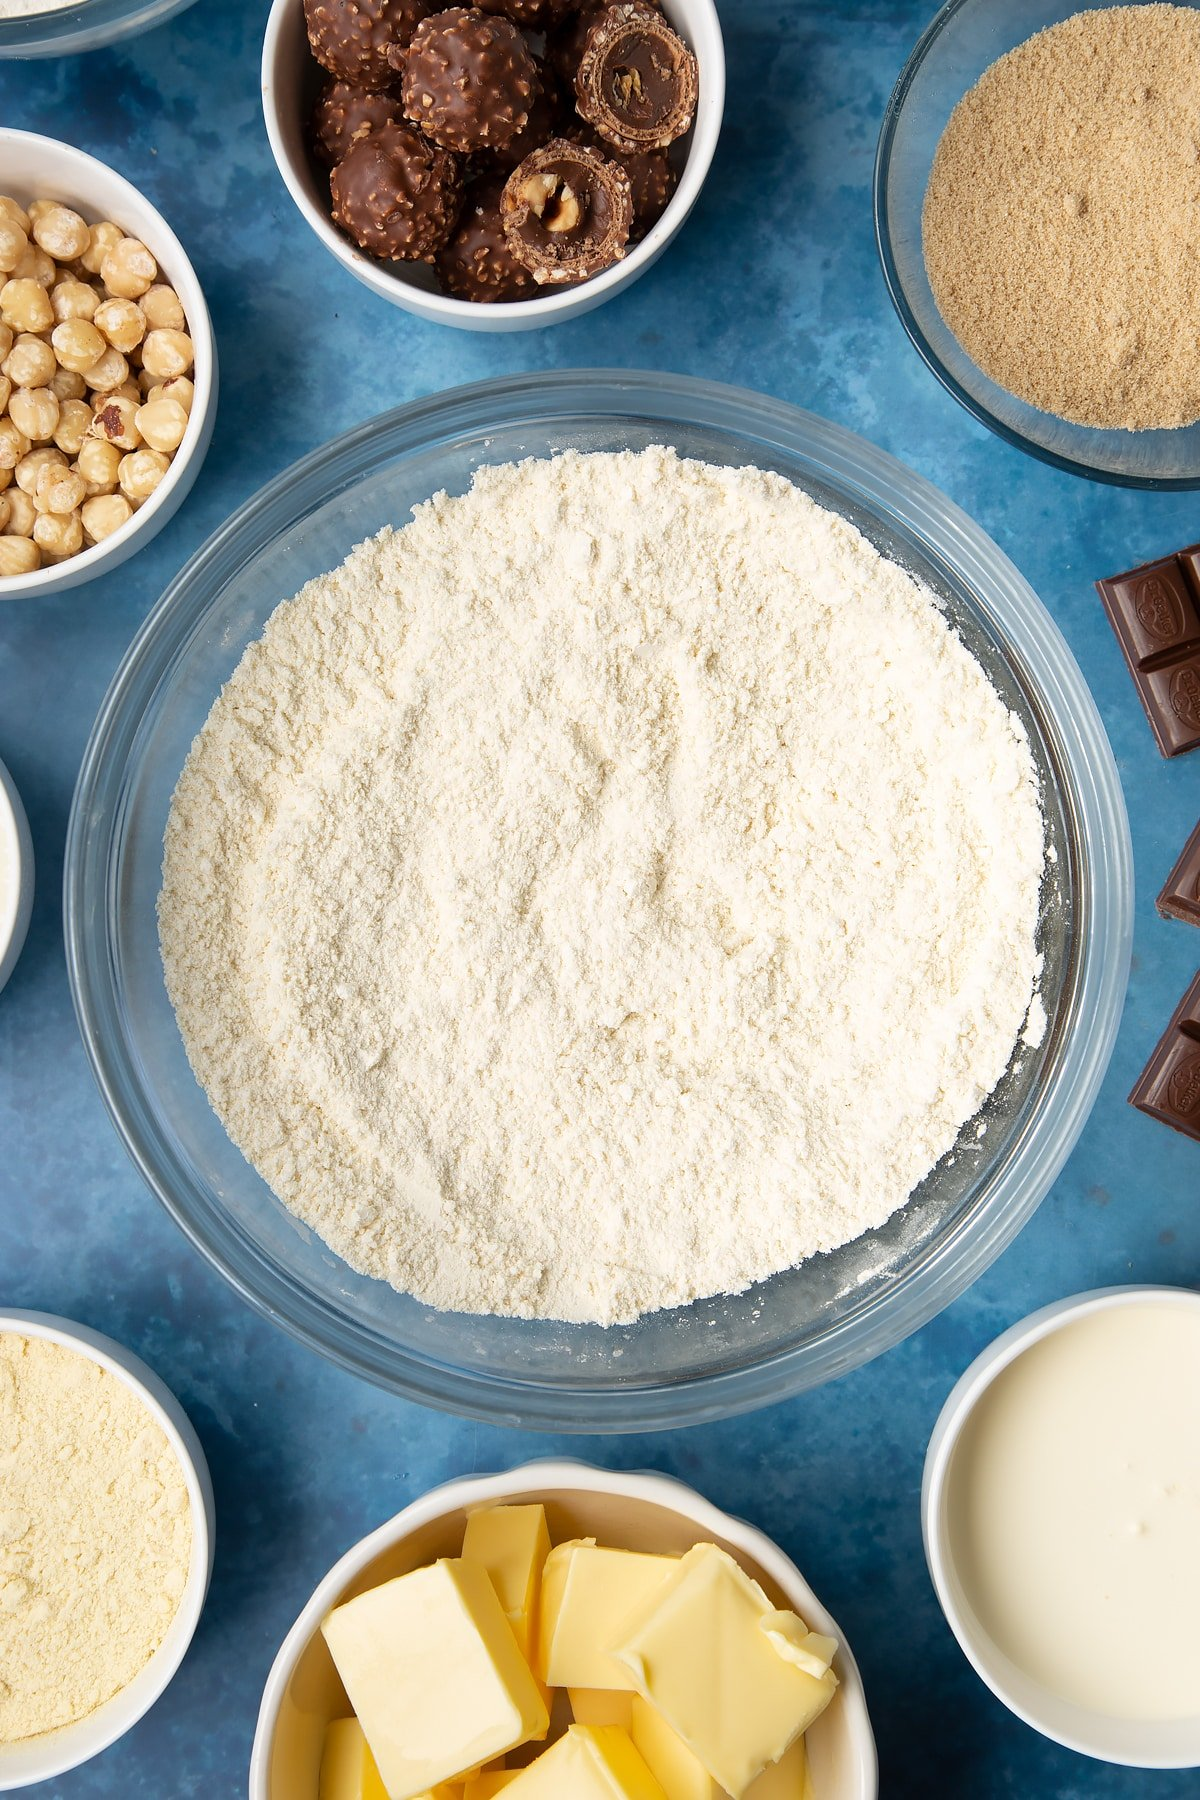 Flour, sugar and semolina mixed together in a glass mixing bowl. Ingredients to make a Ferrero Rocher slice surround the bowl.